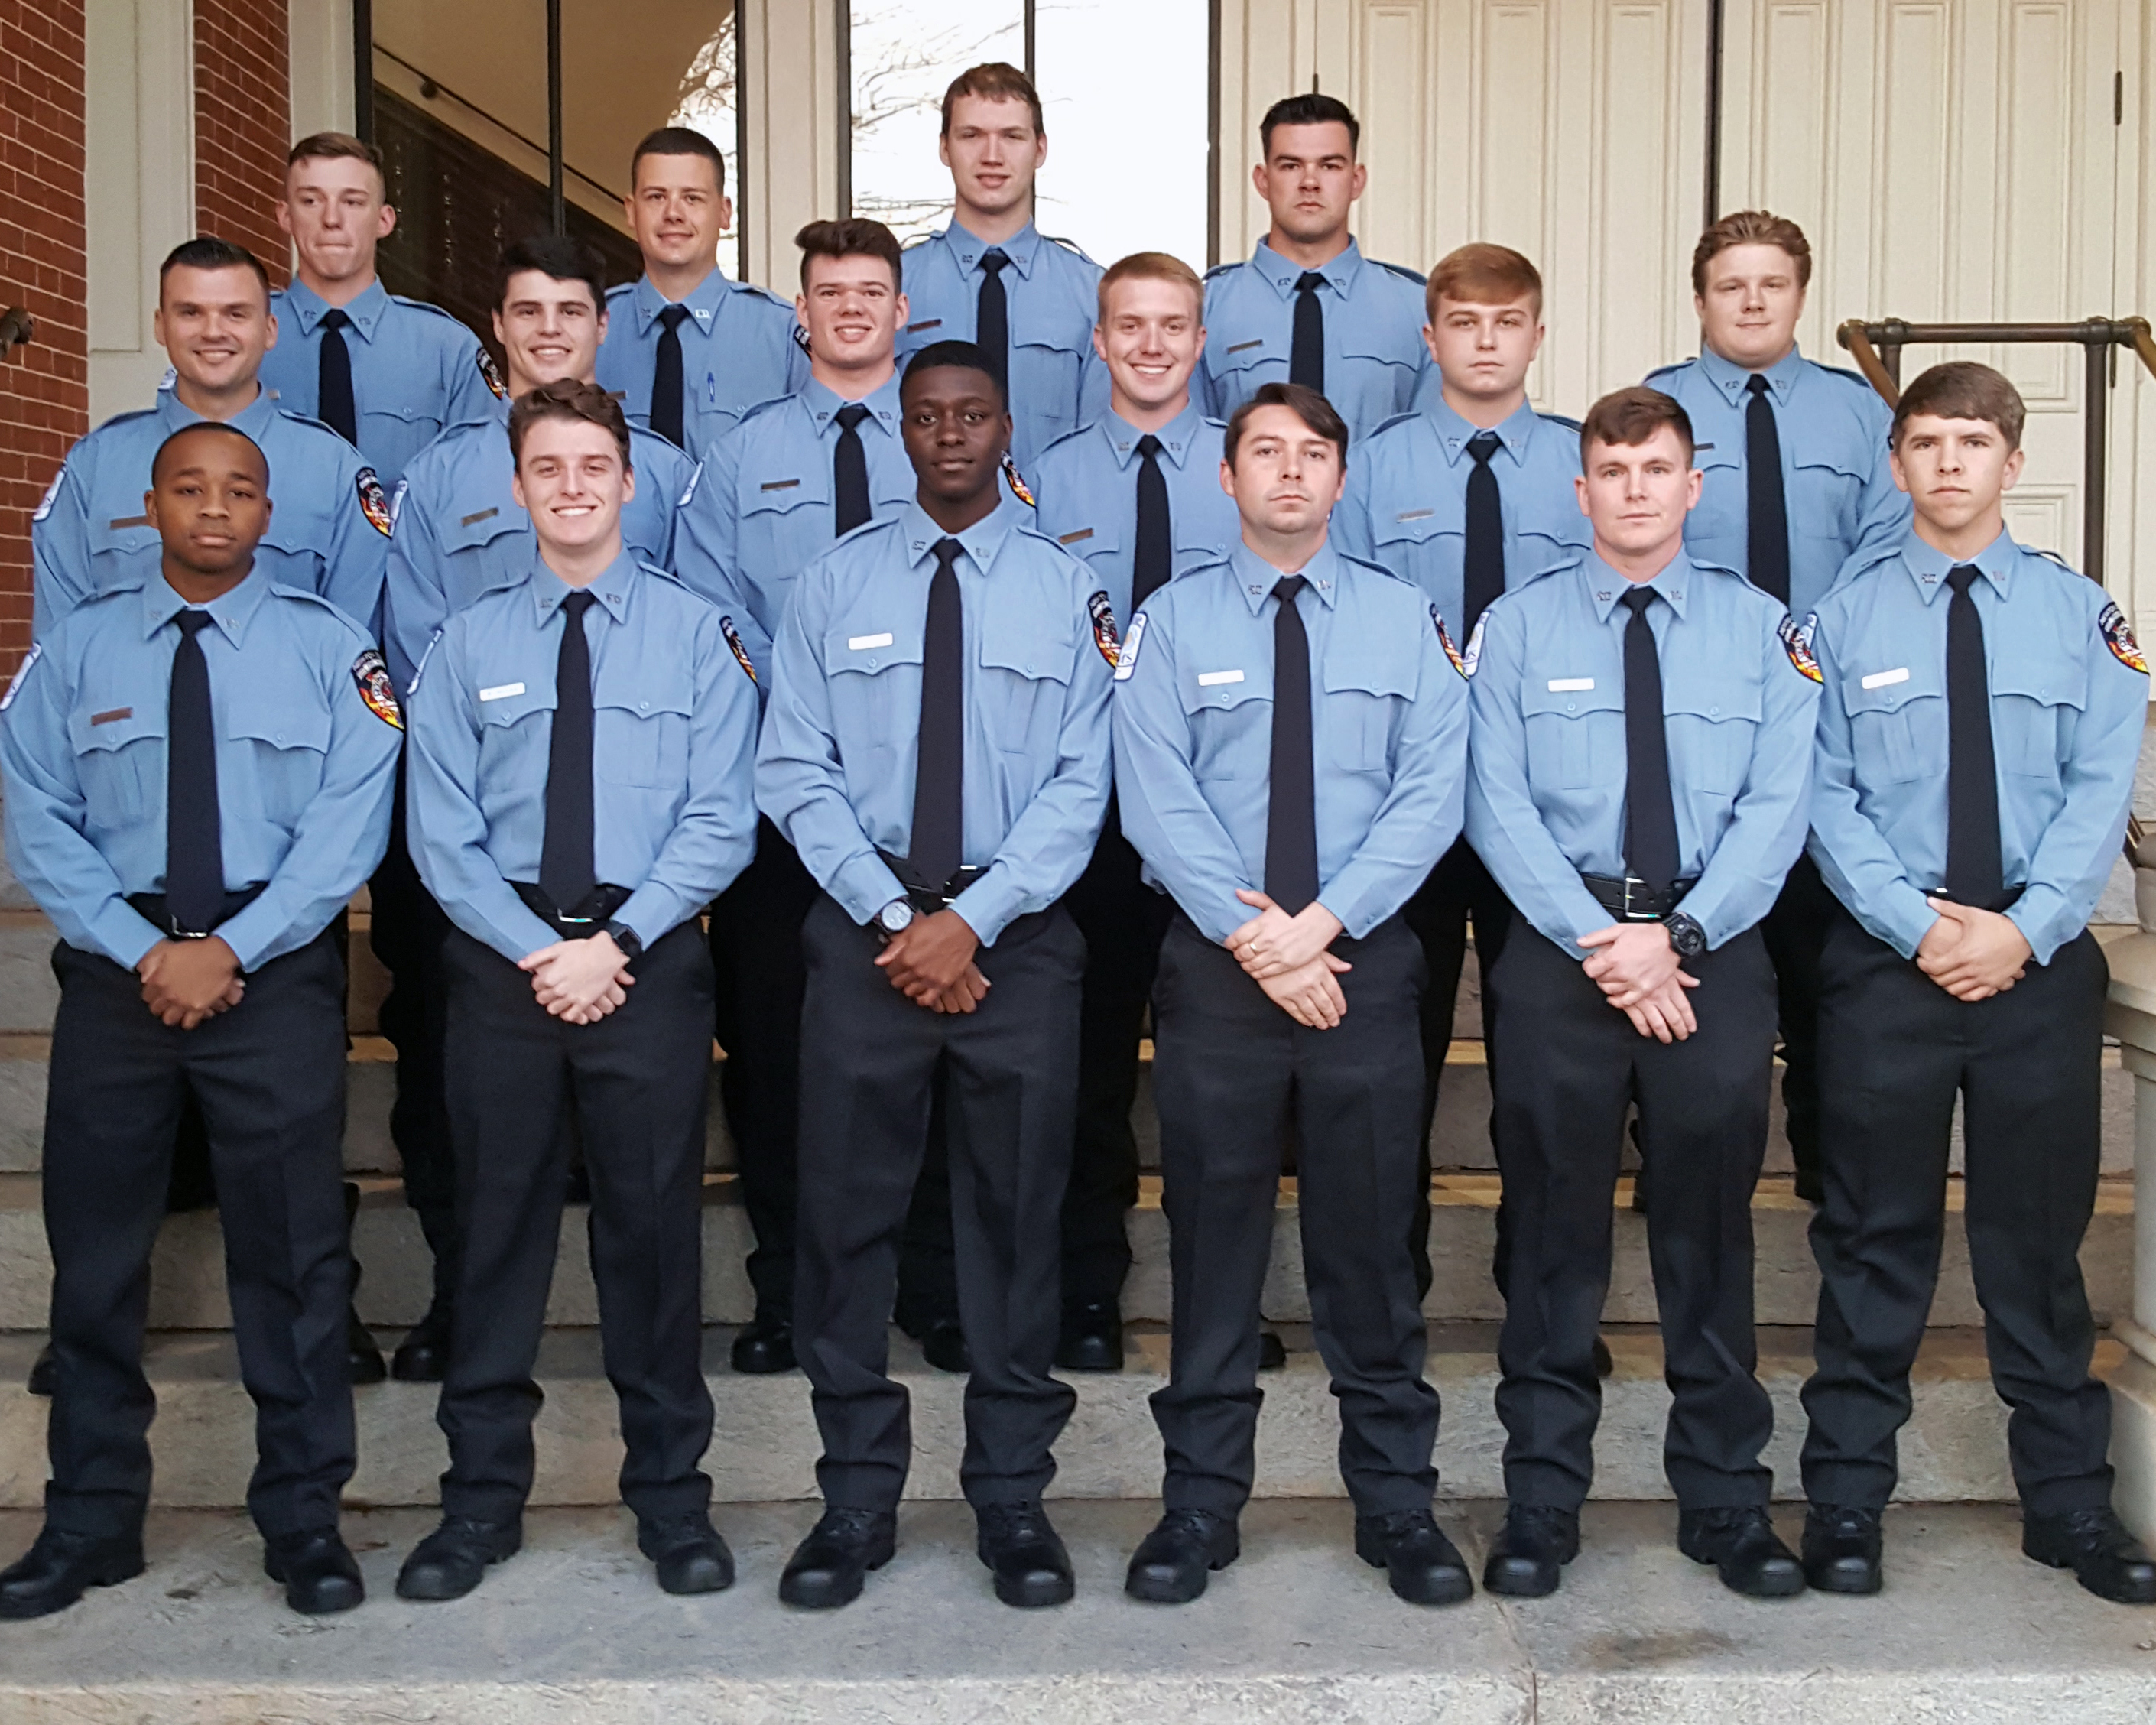 Image of NCFS Class of 2020 recruits